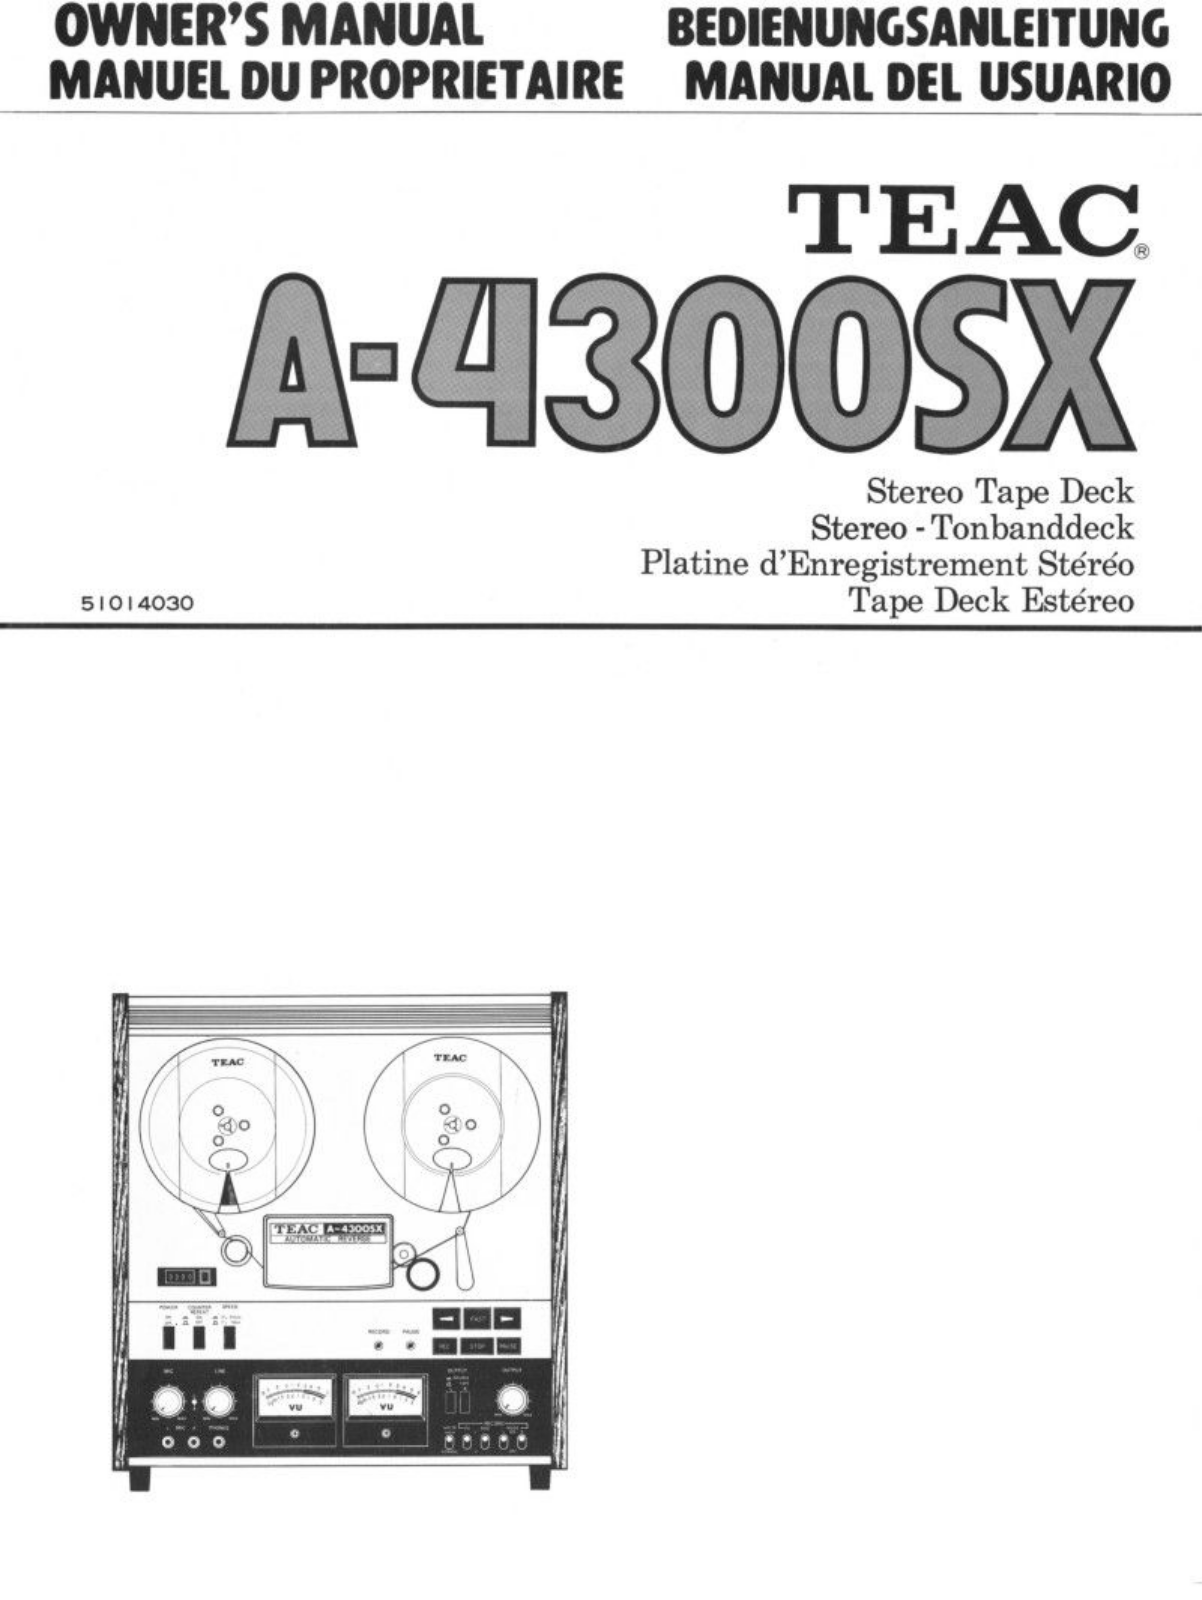 TEAC A-4300-SX Owners manual